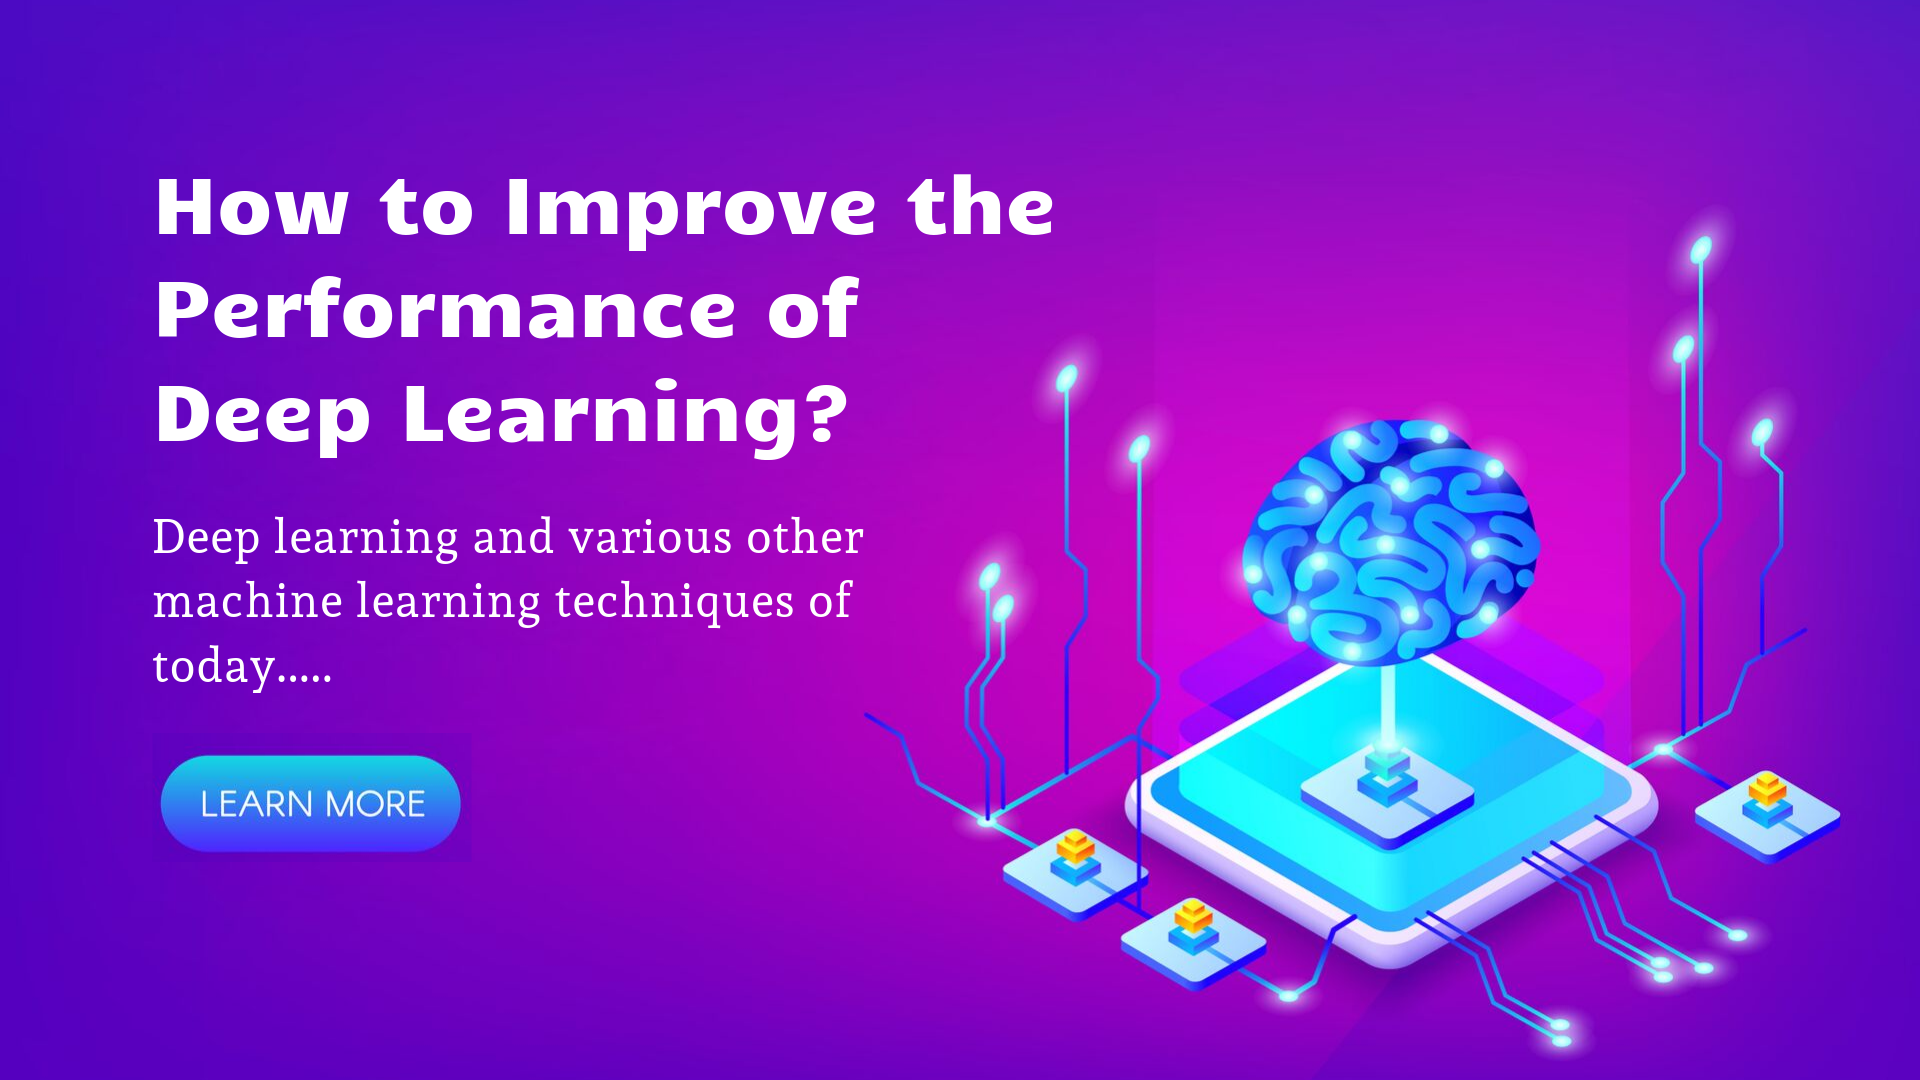 How to Improve the Performance of Deep Learning?